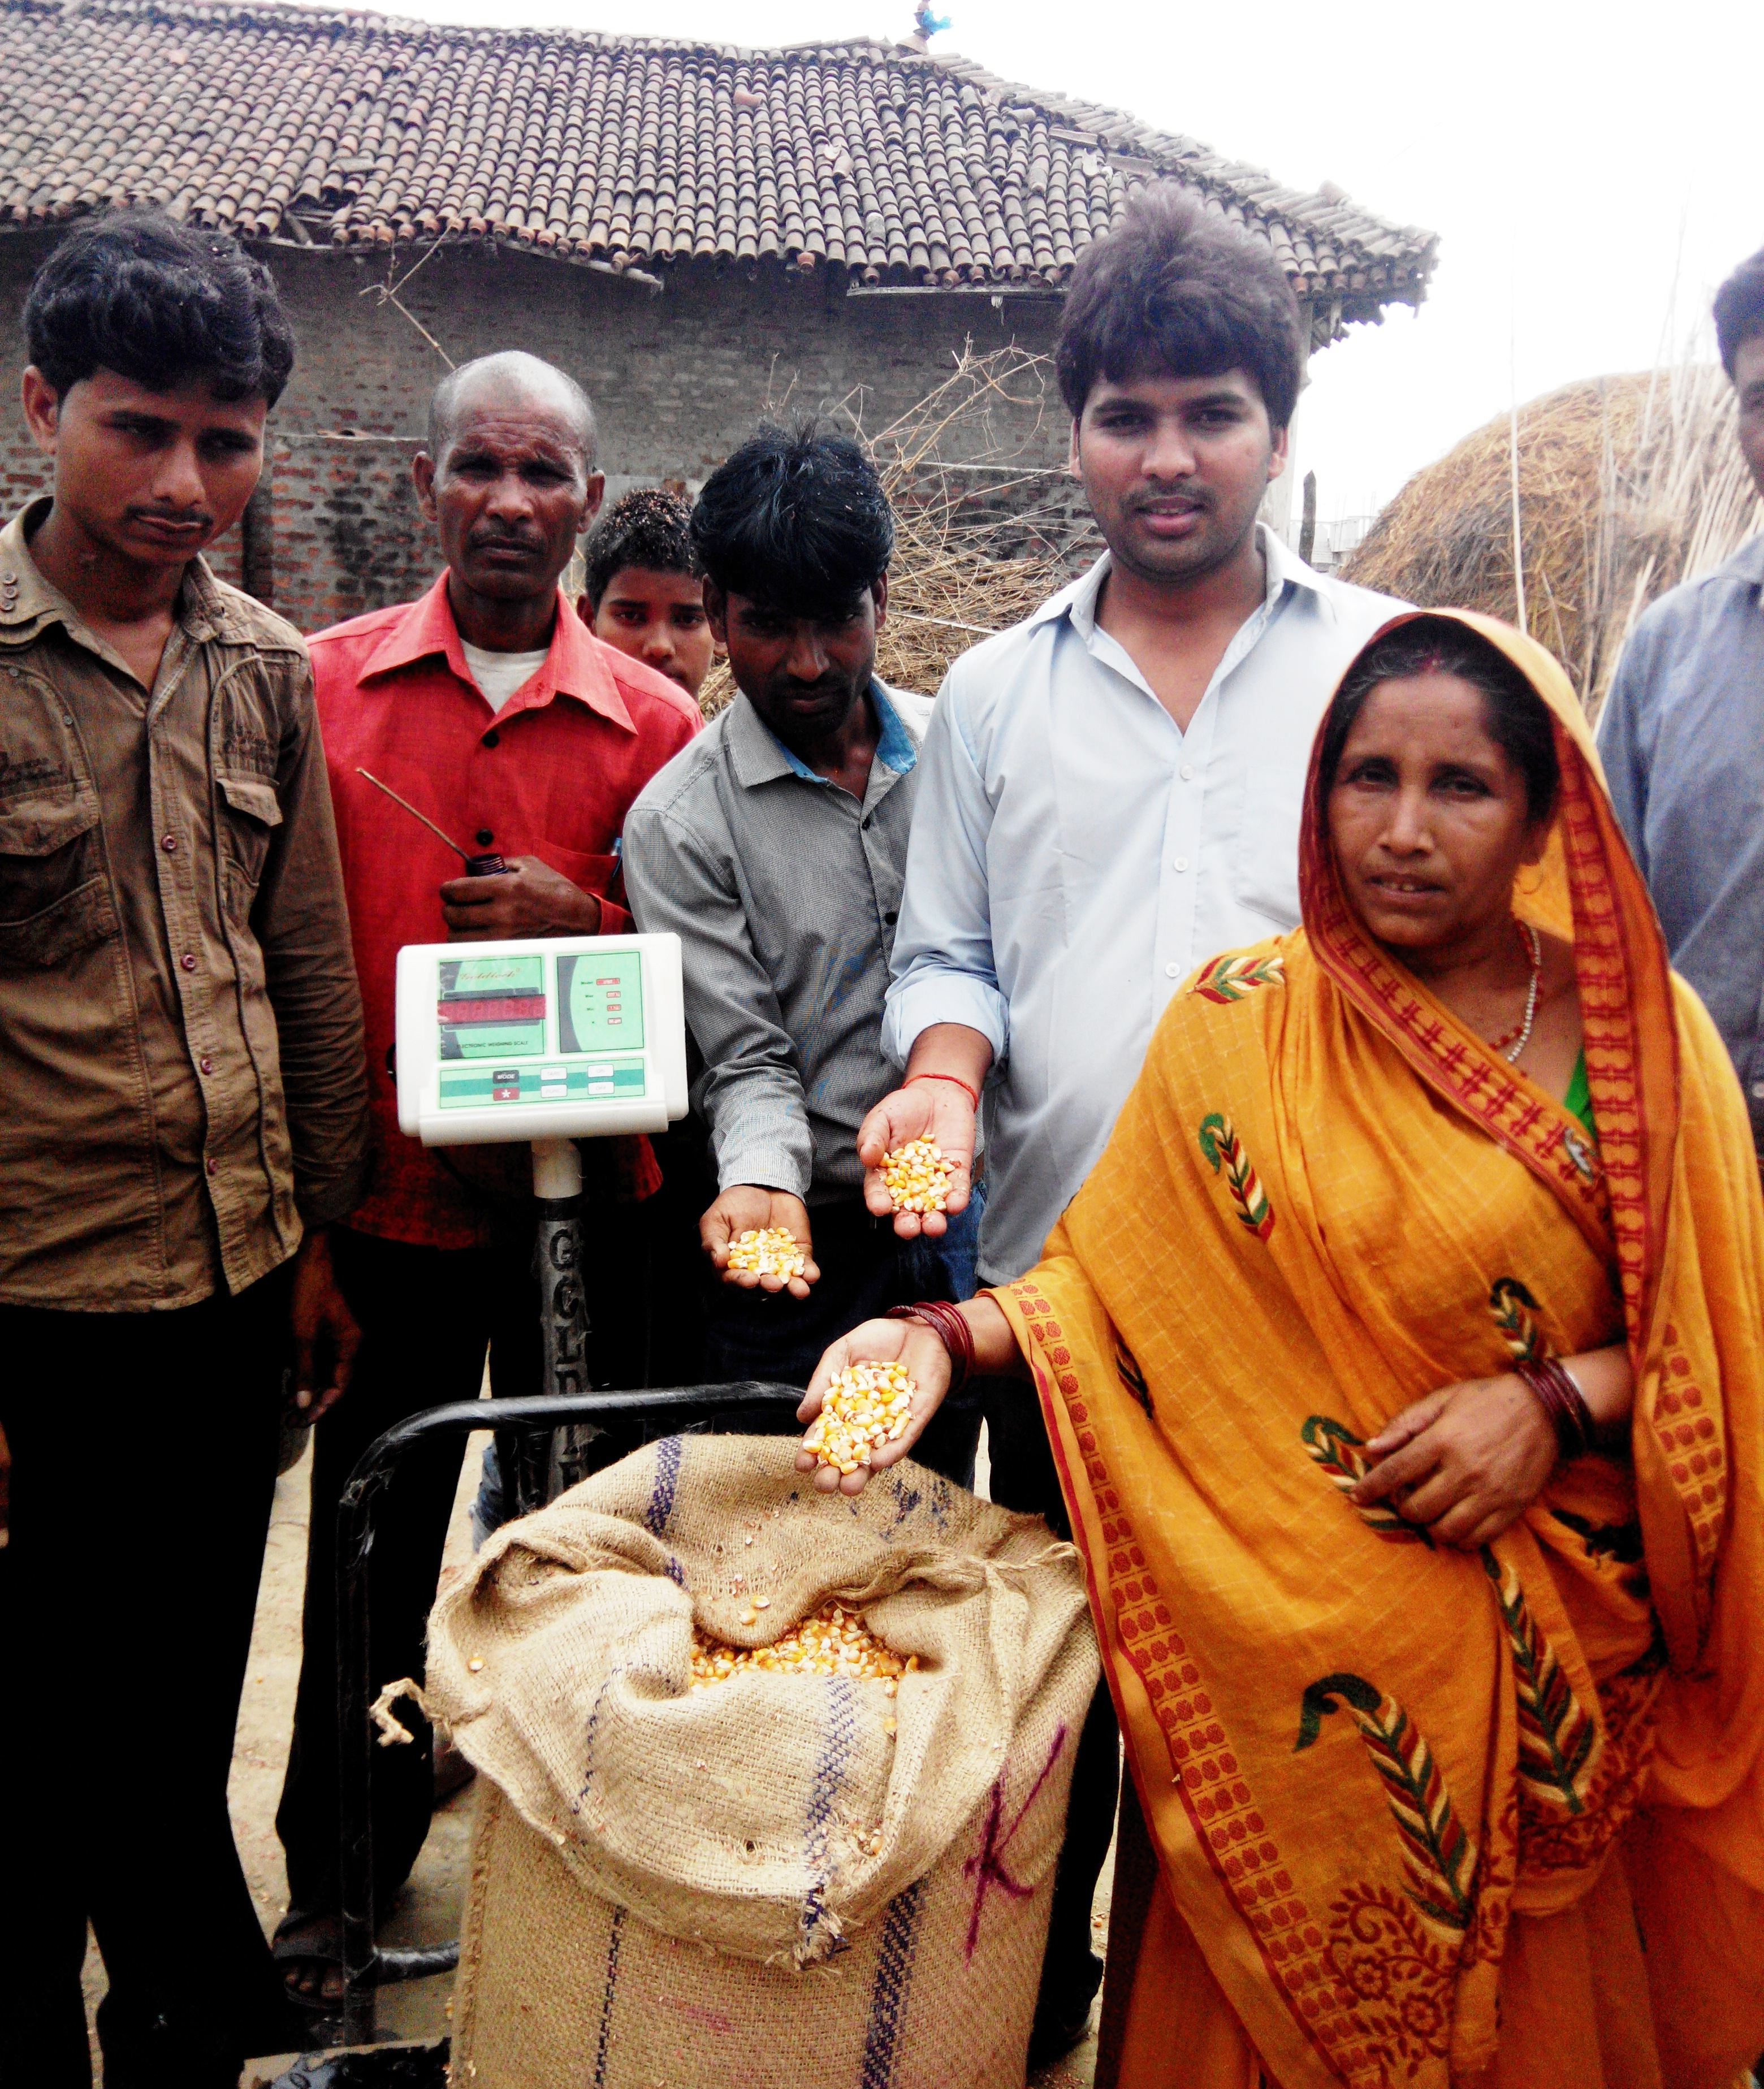 Use of electronic weighing machines has brought about transparency in weighing practices